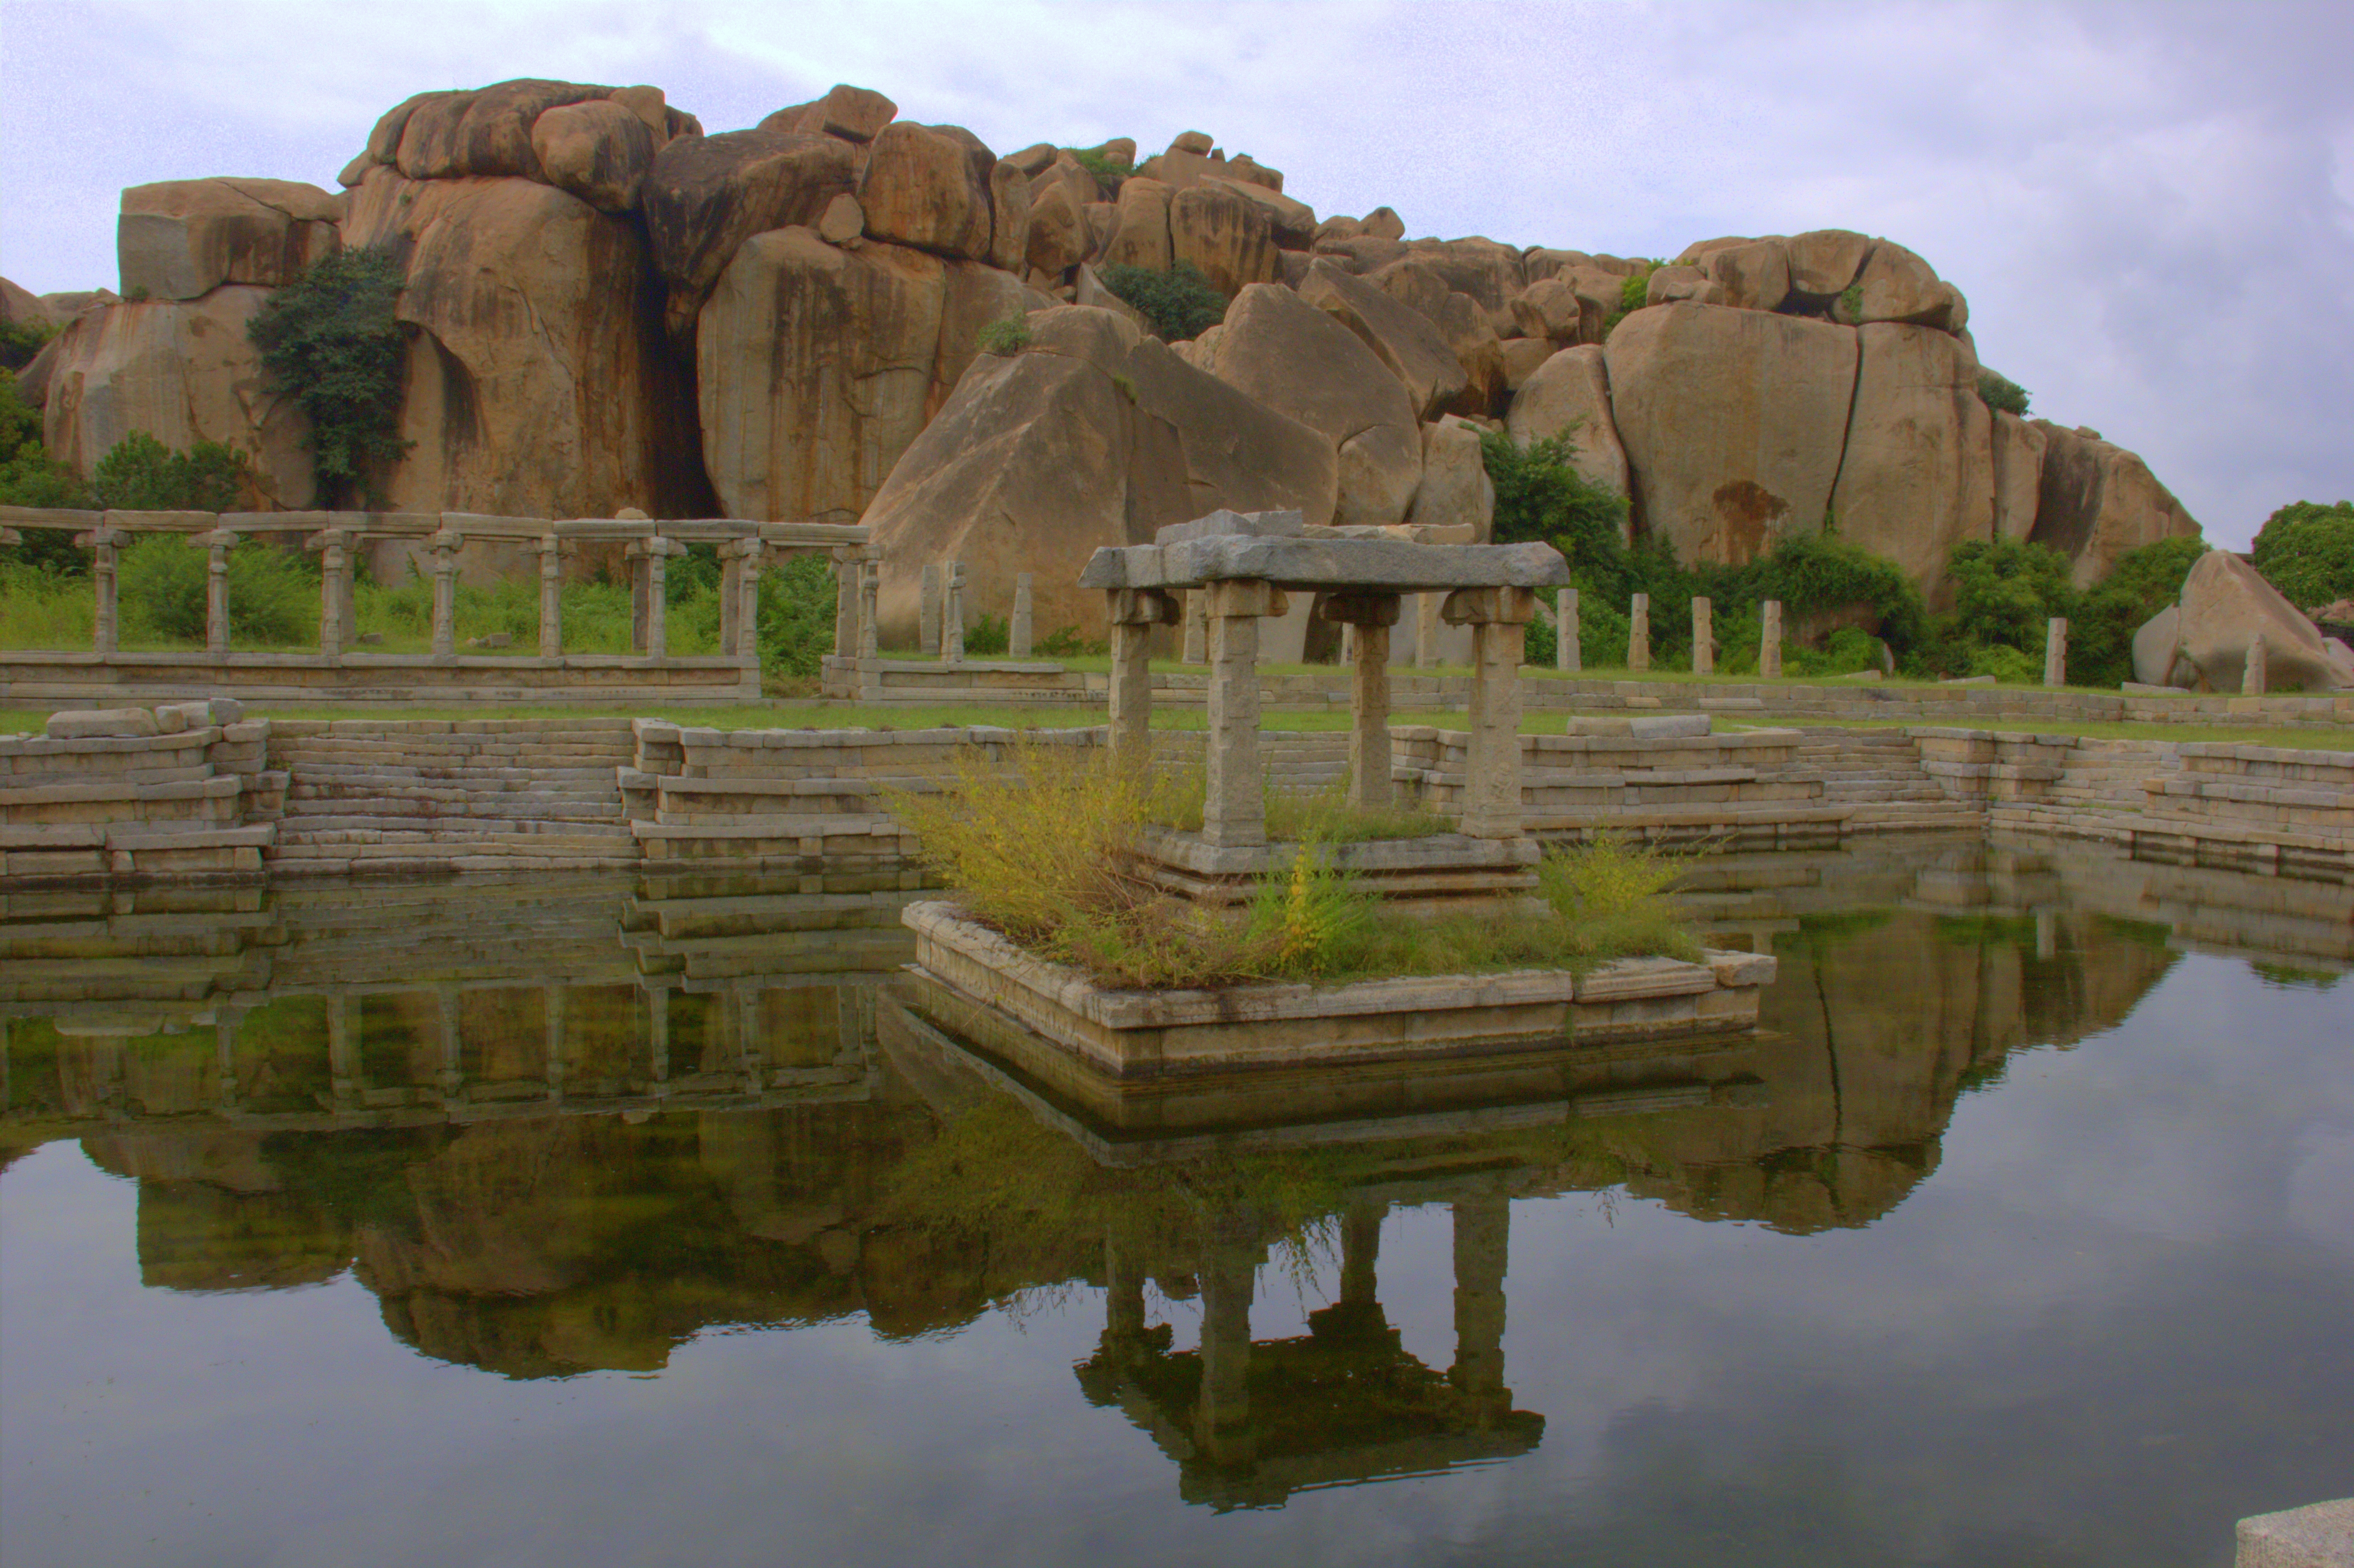 explore hampi riverside ruins at your own pace